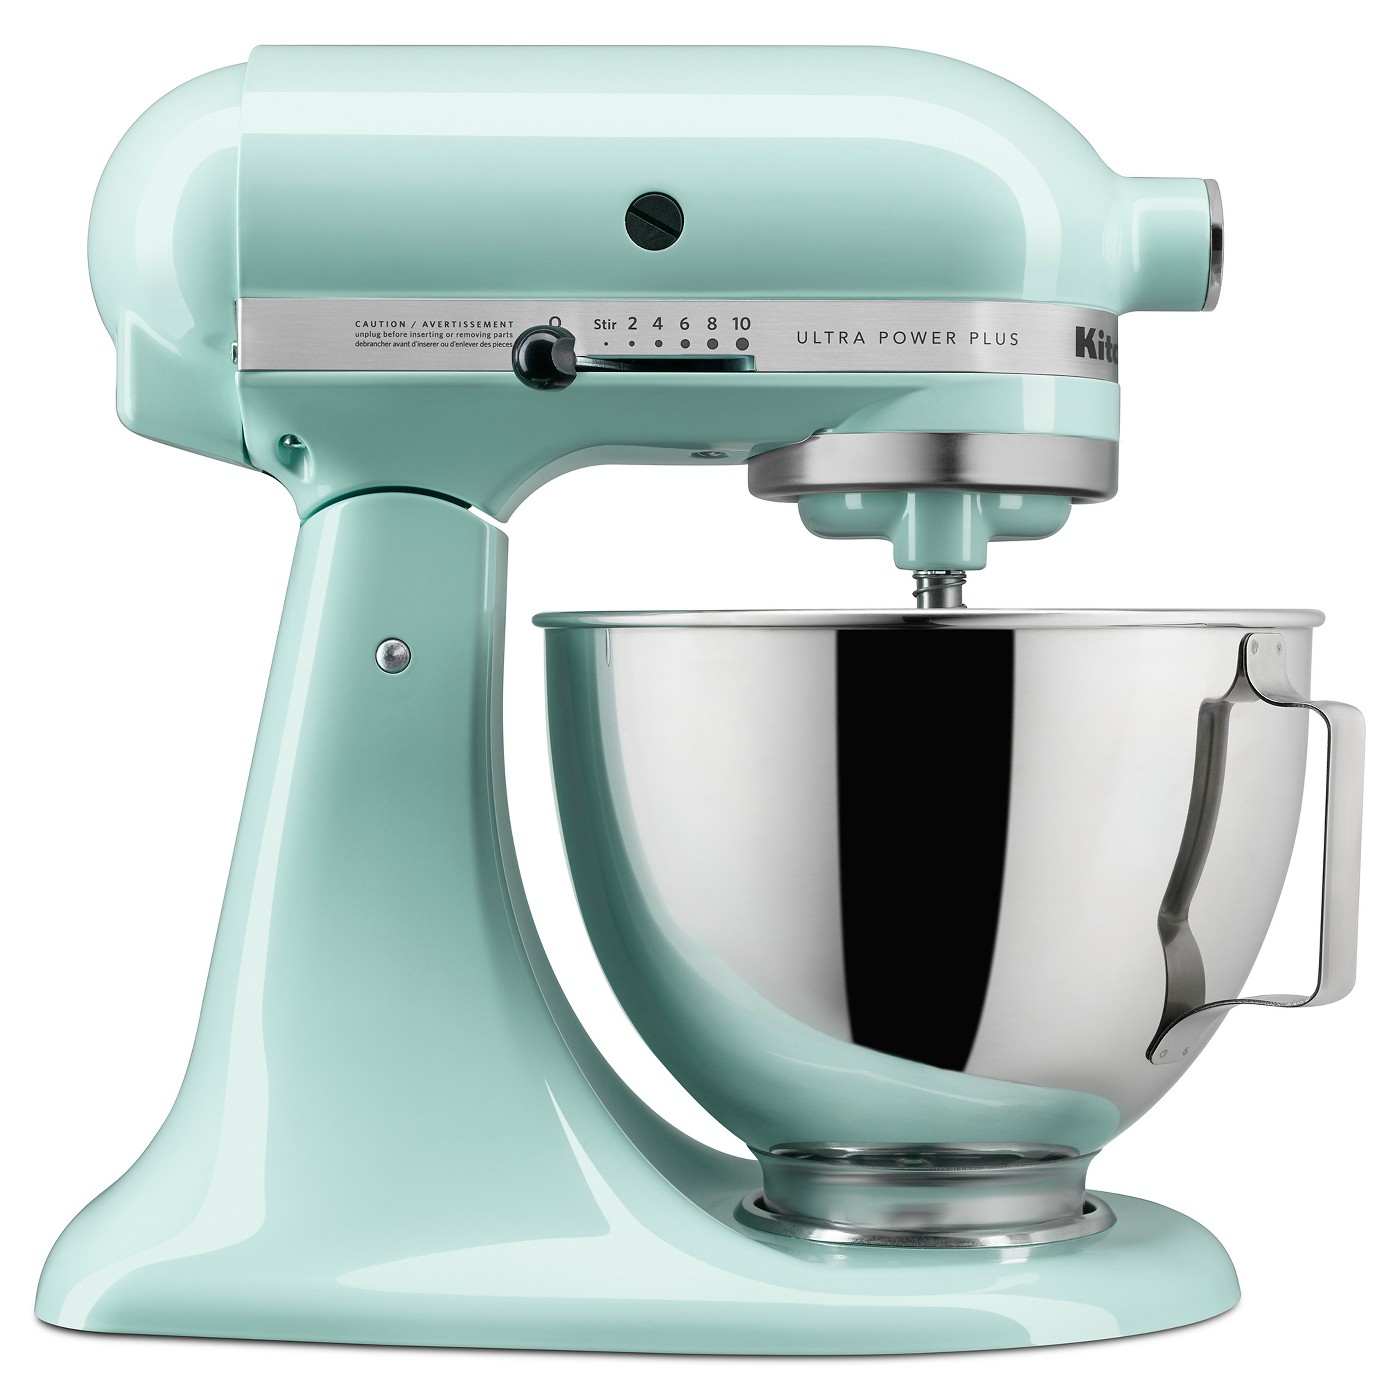 KitchenAid Ultra Power Plus 4.5qt Tilt-Head Stand Mixer - KSM96 - image 1 of 2